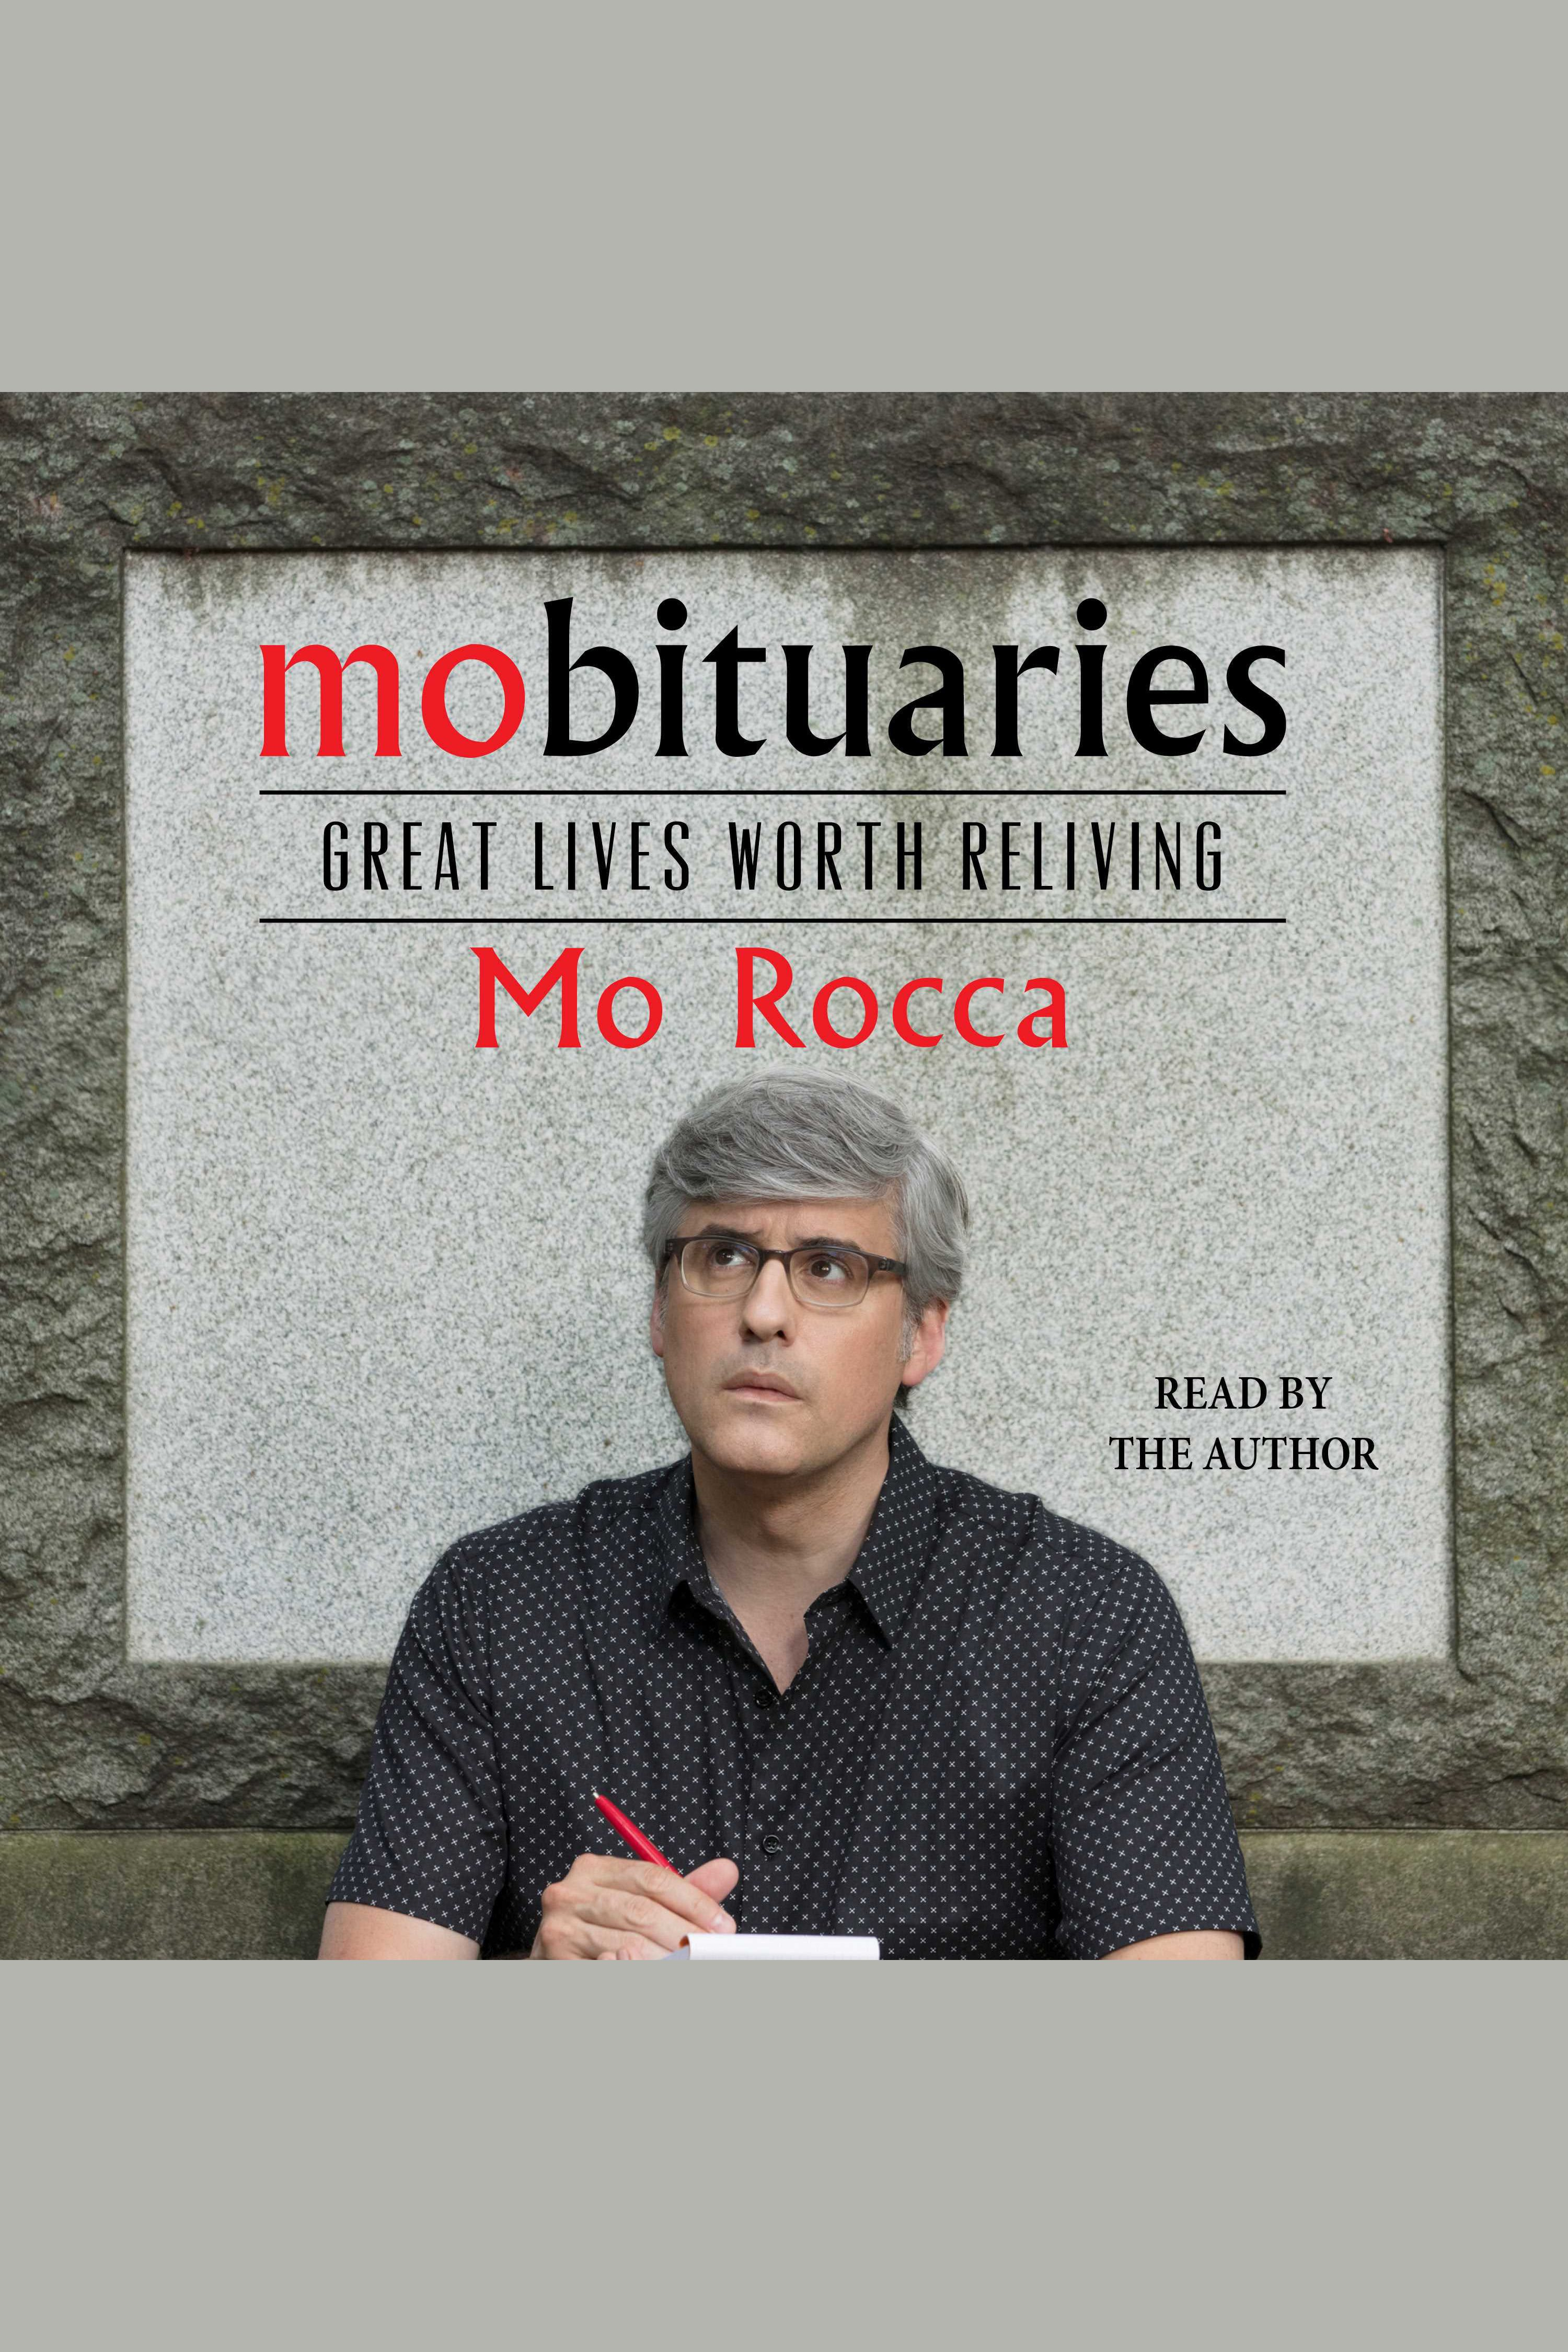 Mobituaries [electronic resource] : Great Lives Worth Reliving